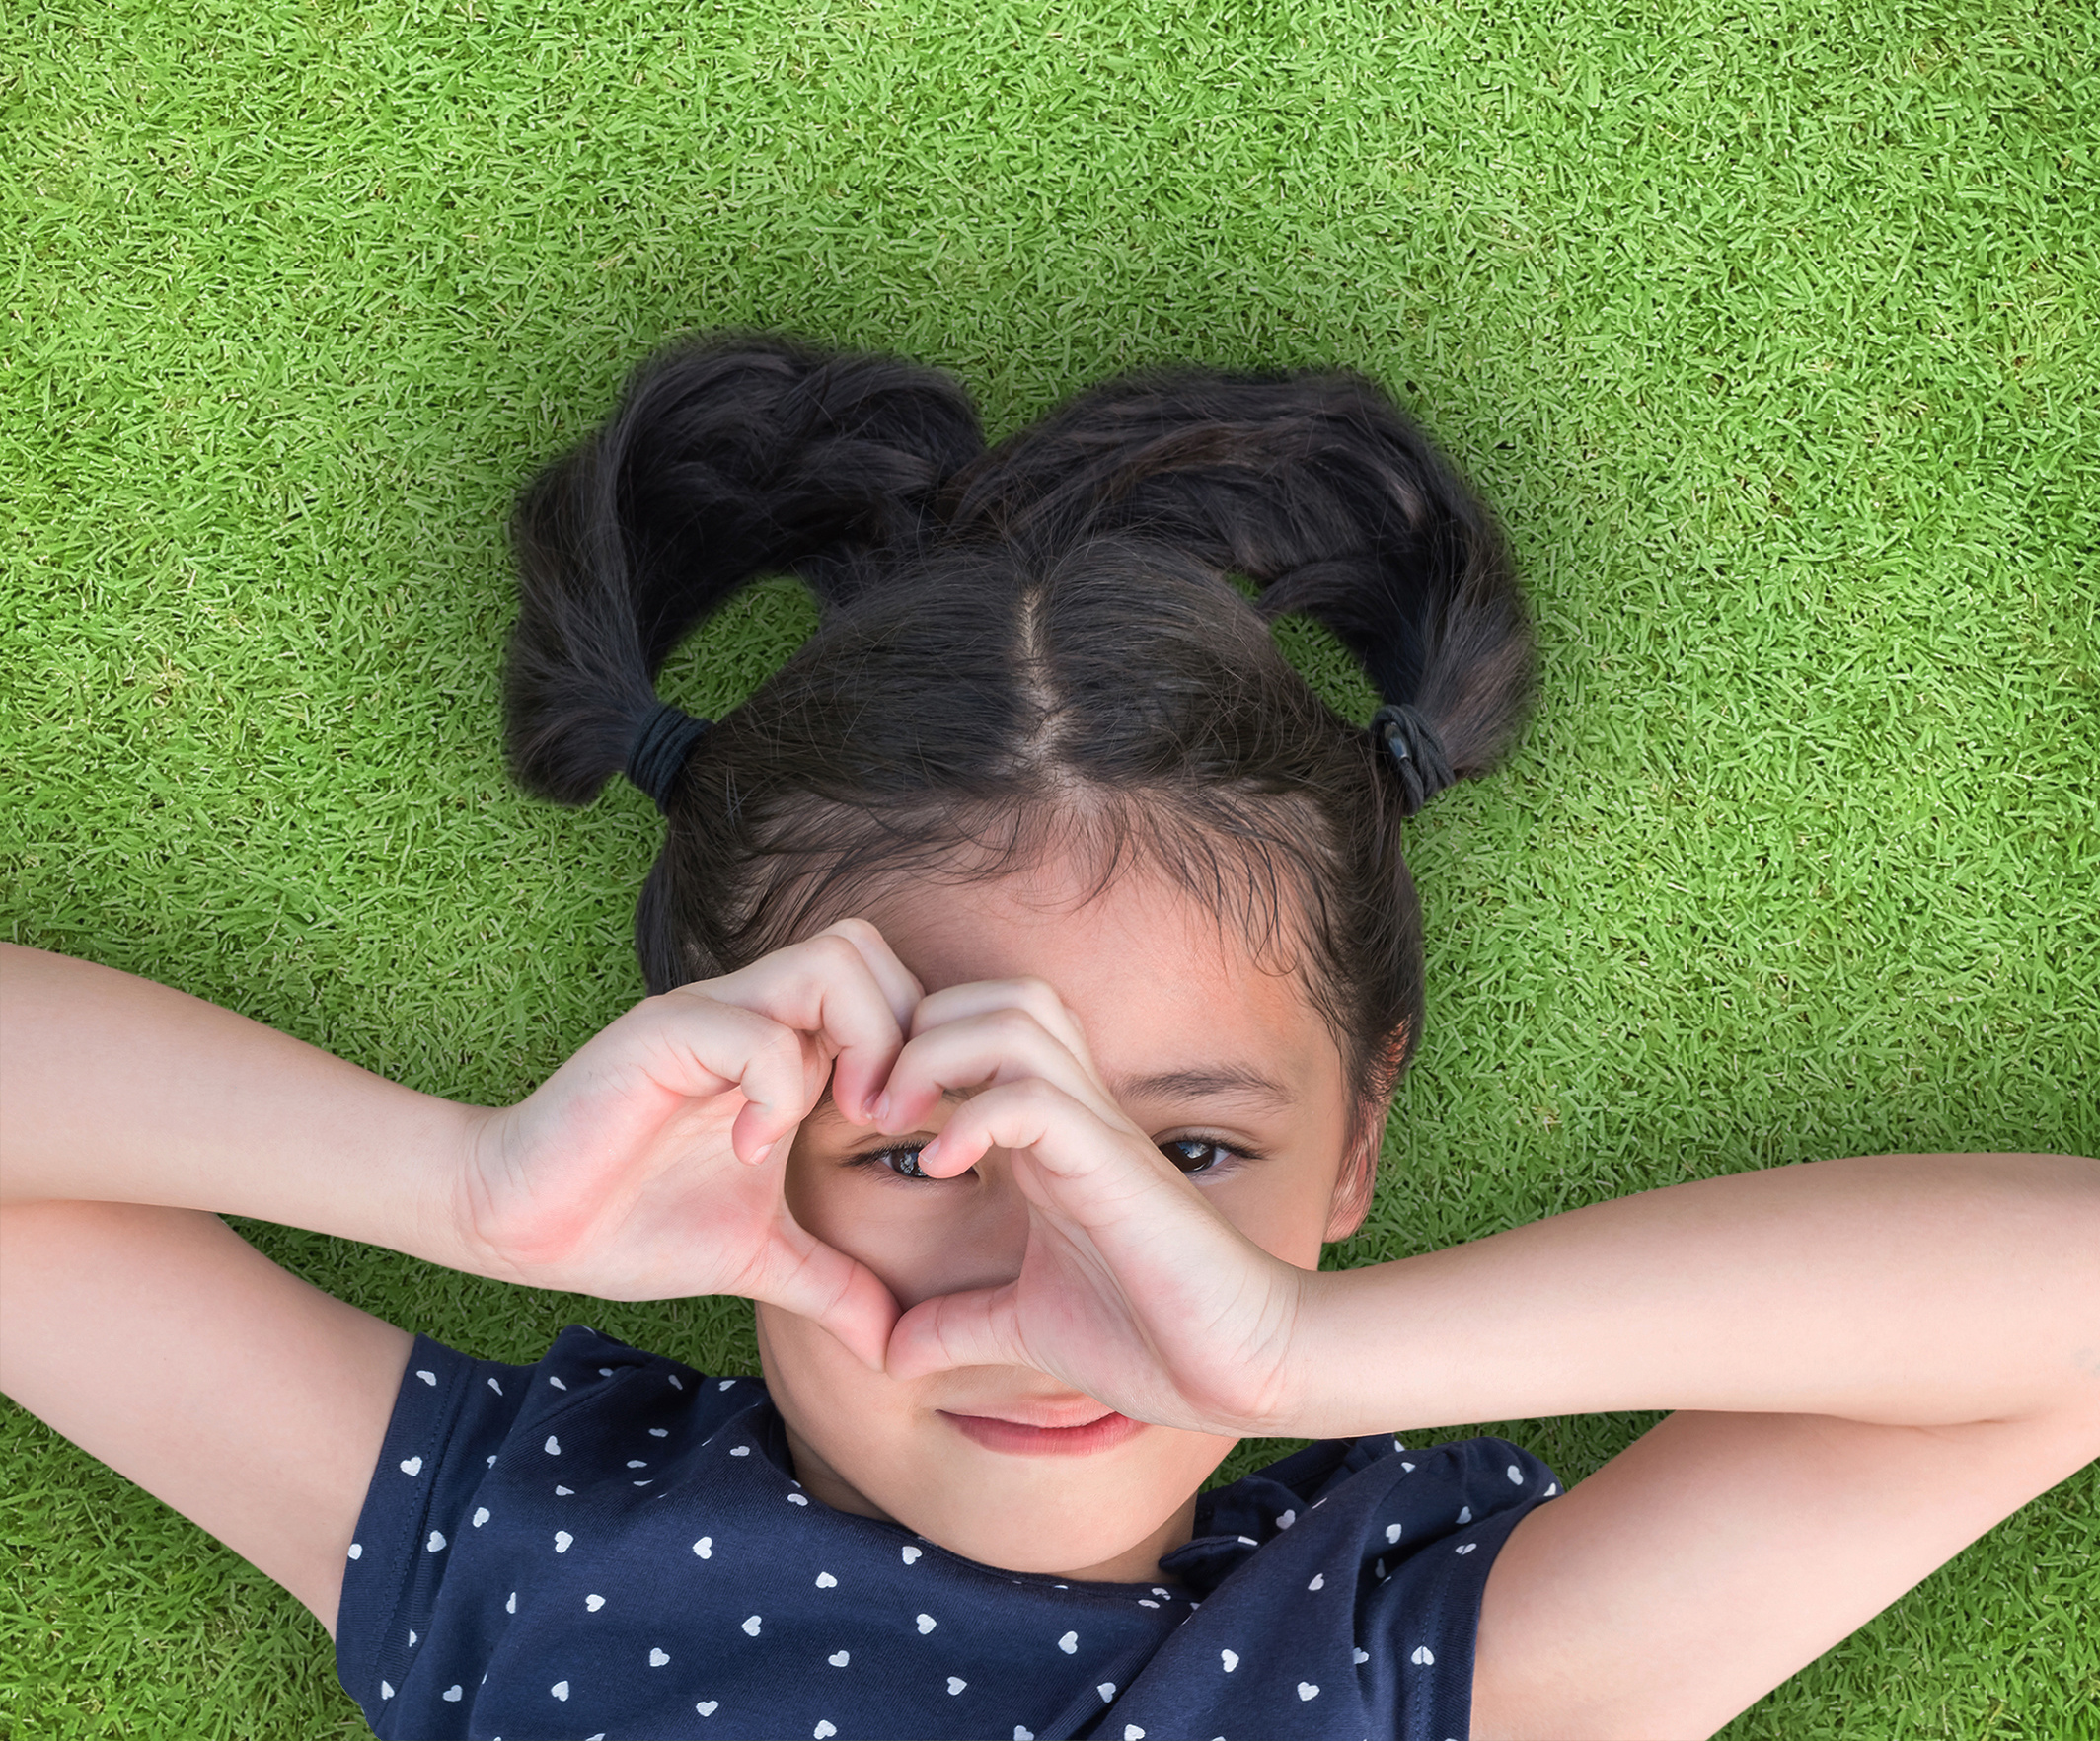 Young girl with hand in a heart shape around eye